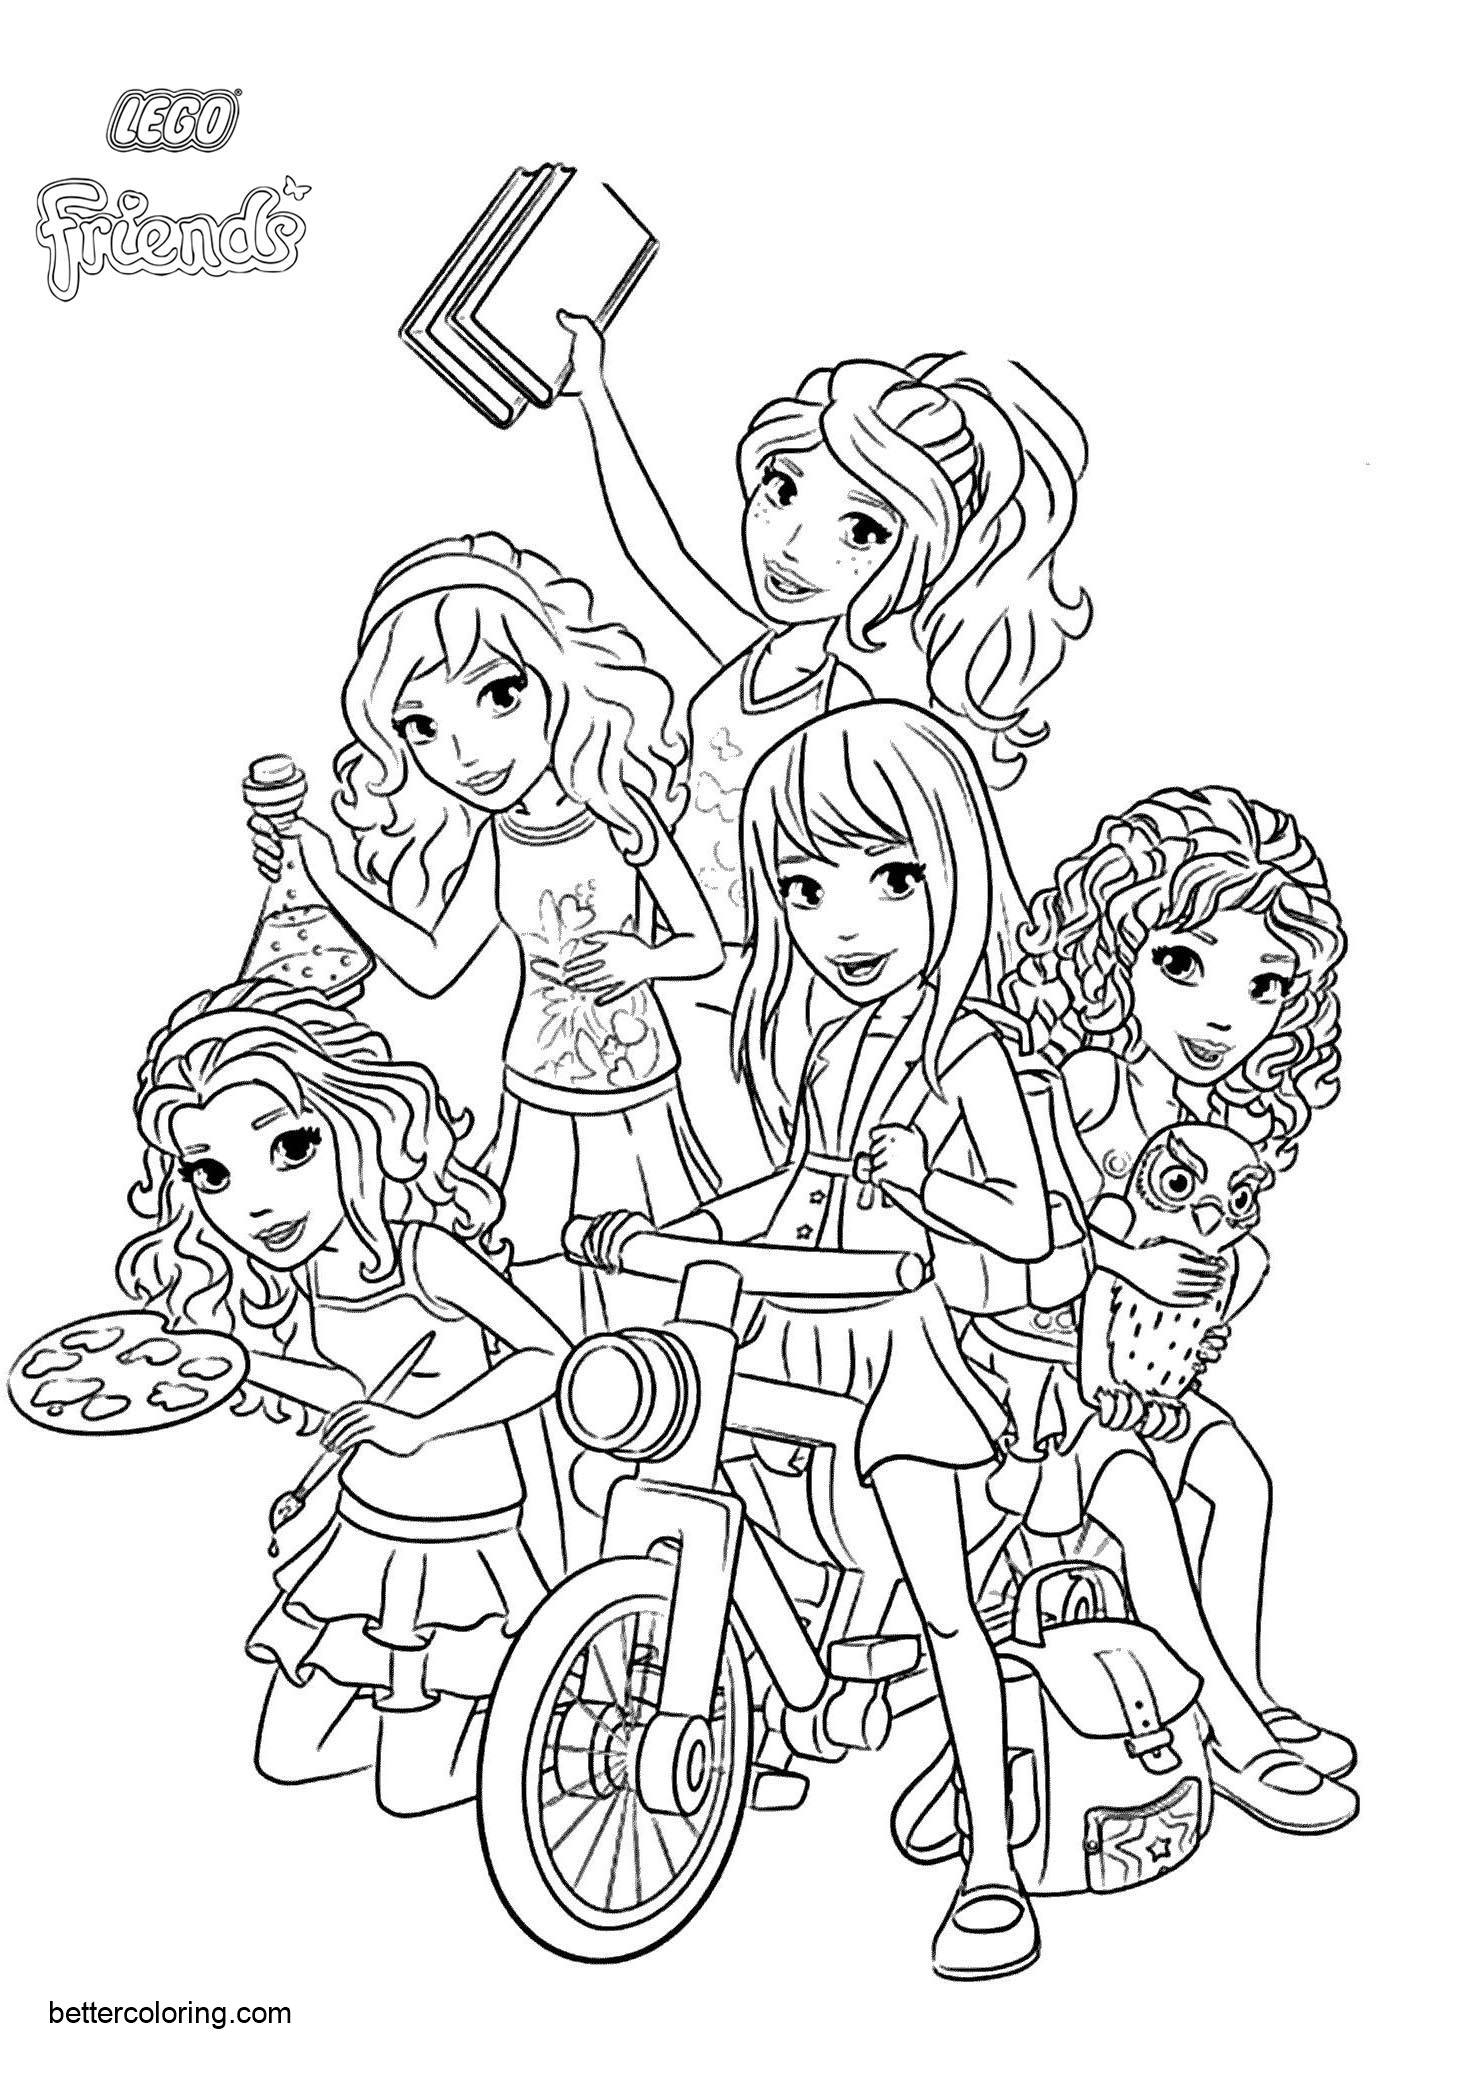 coloring pages of lego friends lego friends characters coloring pages free printable friends coloring of pages lego